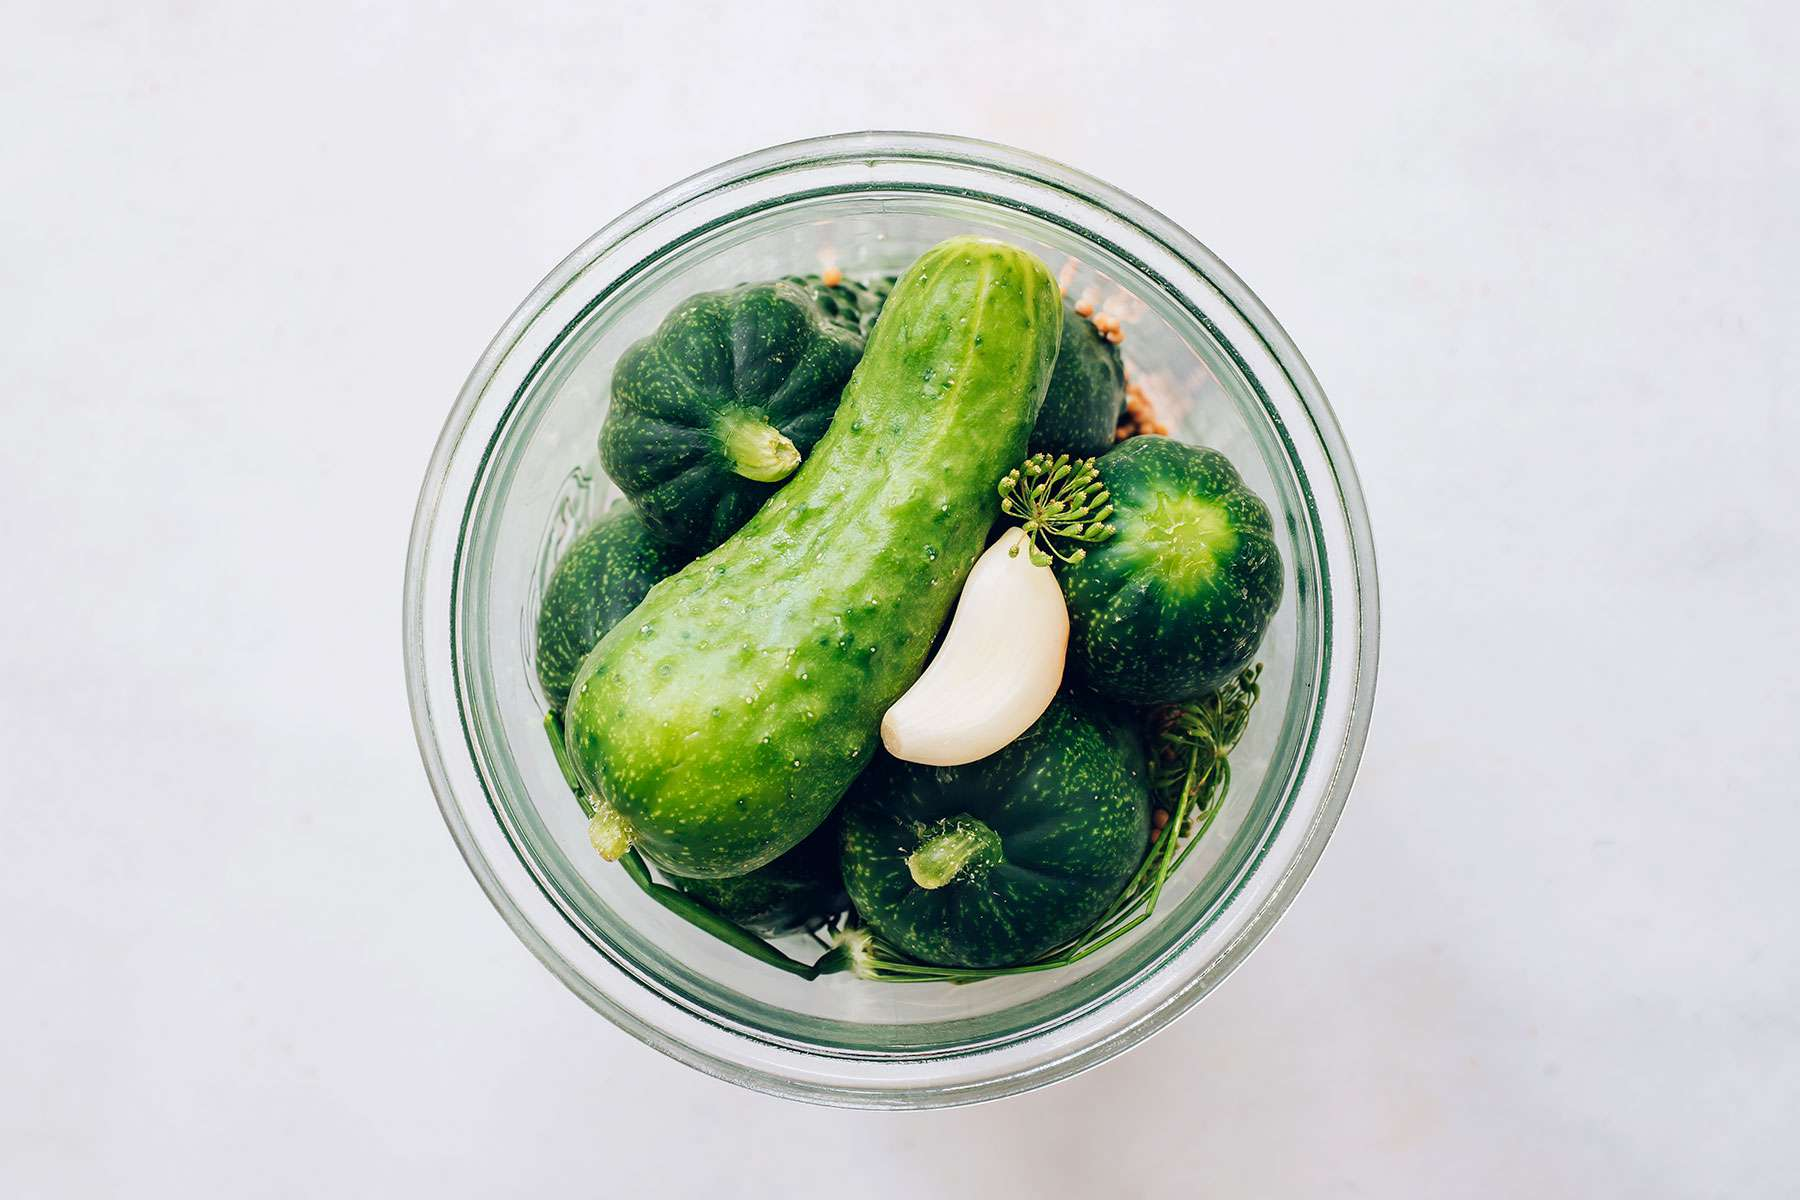 Place mustard seeds, garlic, and dill in a jar